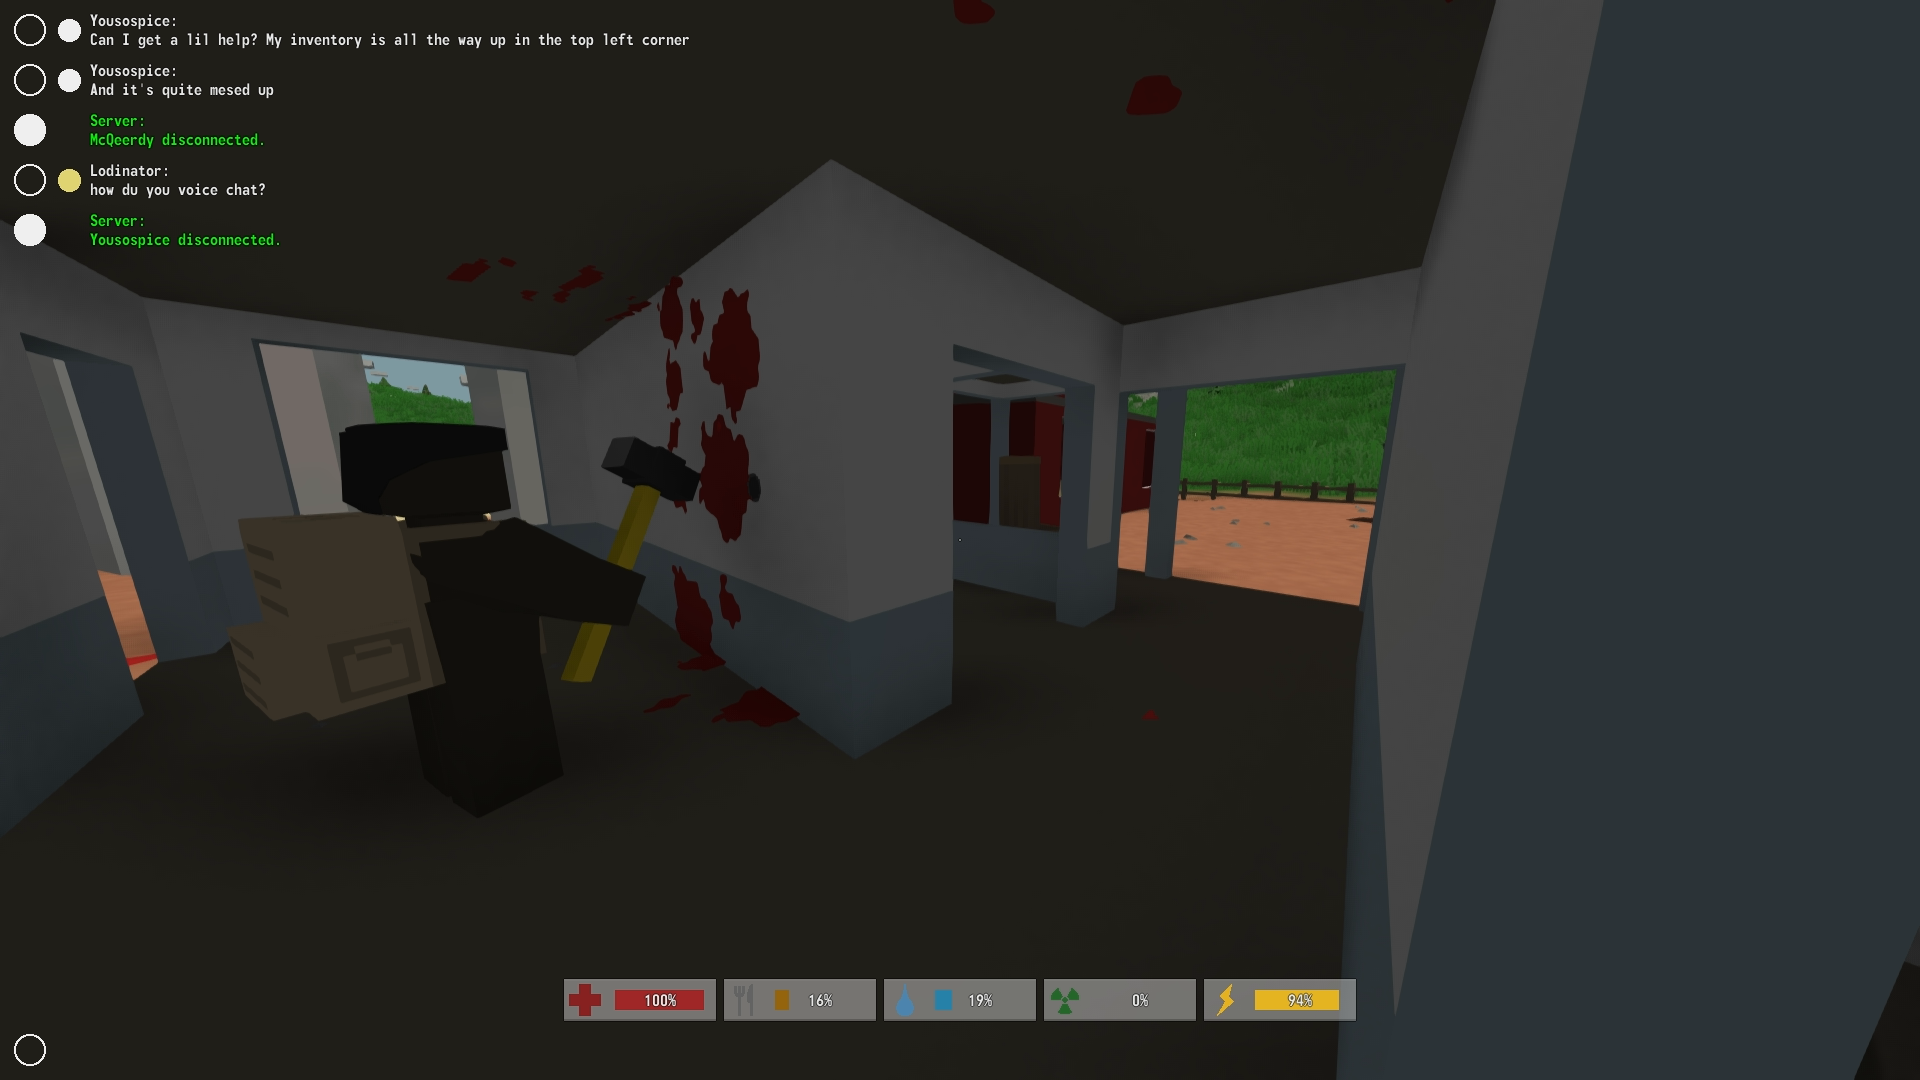 How to chat in unturned - Sledge Hammer Maniac In The New Unturned Zombie Survival Game That S Free To Play On Steam